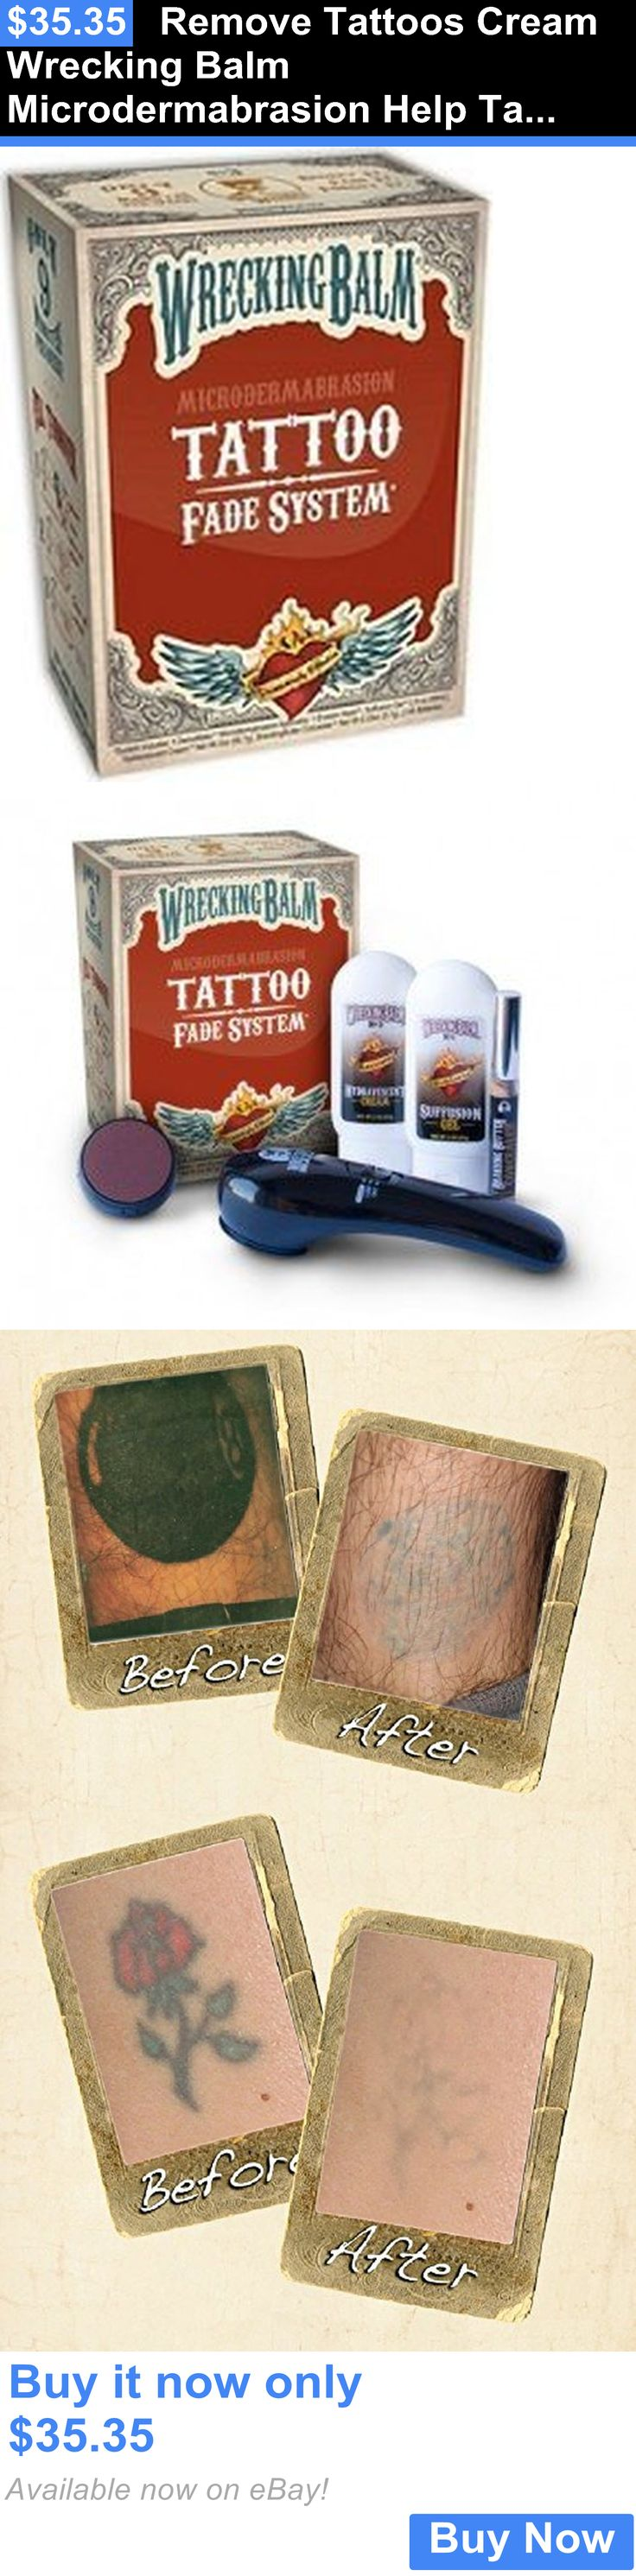 ✅ 25  Best Memes About Tattoo Removal   Tattoo Removal Memes also products   Tattoo Removal Skinial New Zealand as well Think Tattoo Removal   New Zealand   Tattoo Removal Cream together with Tattoo Removal Cream Nz   Skin Arts moreover  further 38 best images about best tattoo removal on Pinterest   New tattoo likewise Christchurch Laser Tattoo Removal   All About You together with 28 best images about NZ Tattoos on Pinterest   Maori designs  Fern besides  as well SCAR REMOVAL CREAM AND TATTOO REMOVAL GEL ON SALE  27847096888 also Tattoo Removal Creams and  Non Laser  Tattoo Removal. on tattoo removal cream new zealand